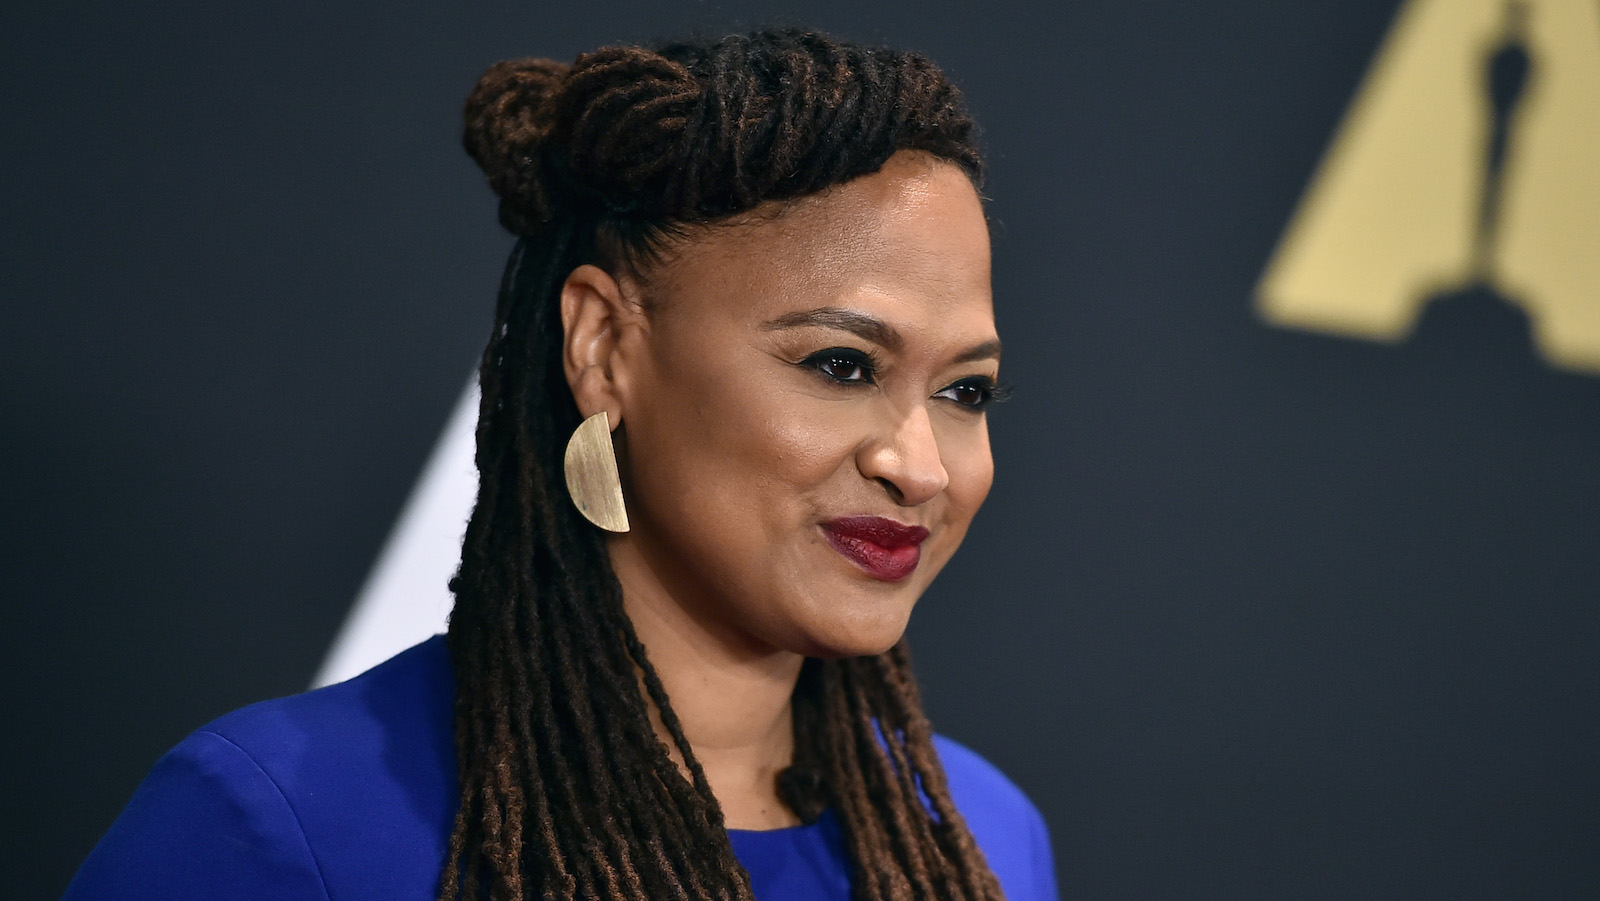 Ava DuVernay arrives at the Governors Awards at the Dolby Ballroom on Saturday, Nov. 14, 2015, in Los Angeles. (Photo by Jordan Strauss/Invision/AP)